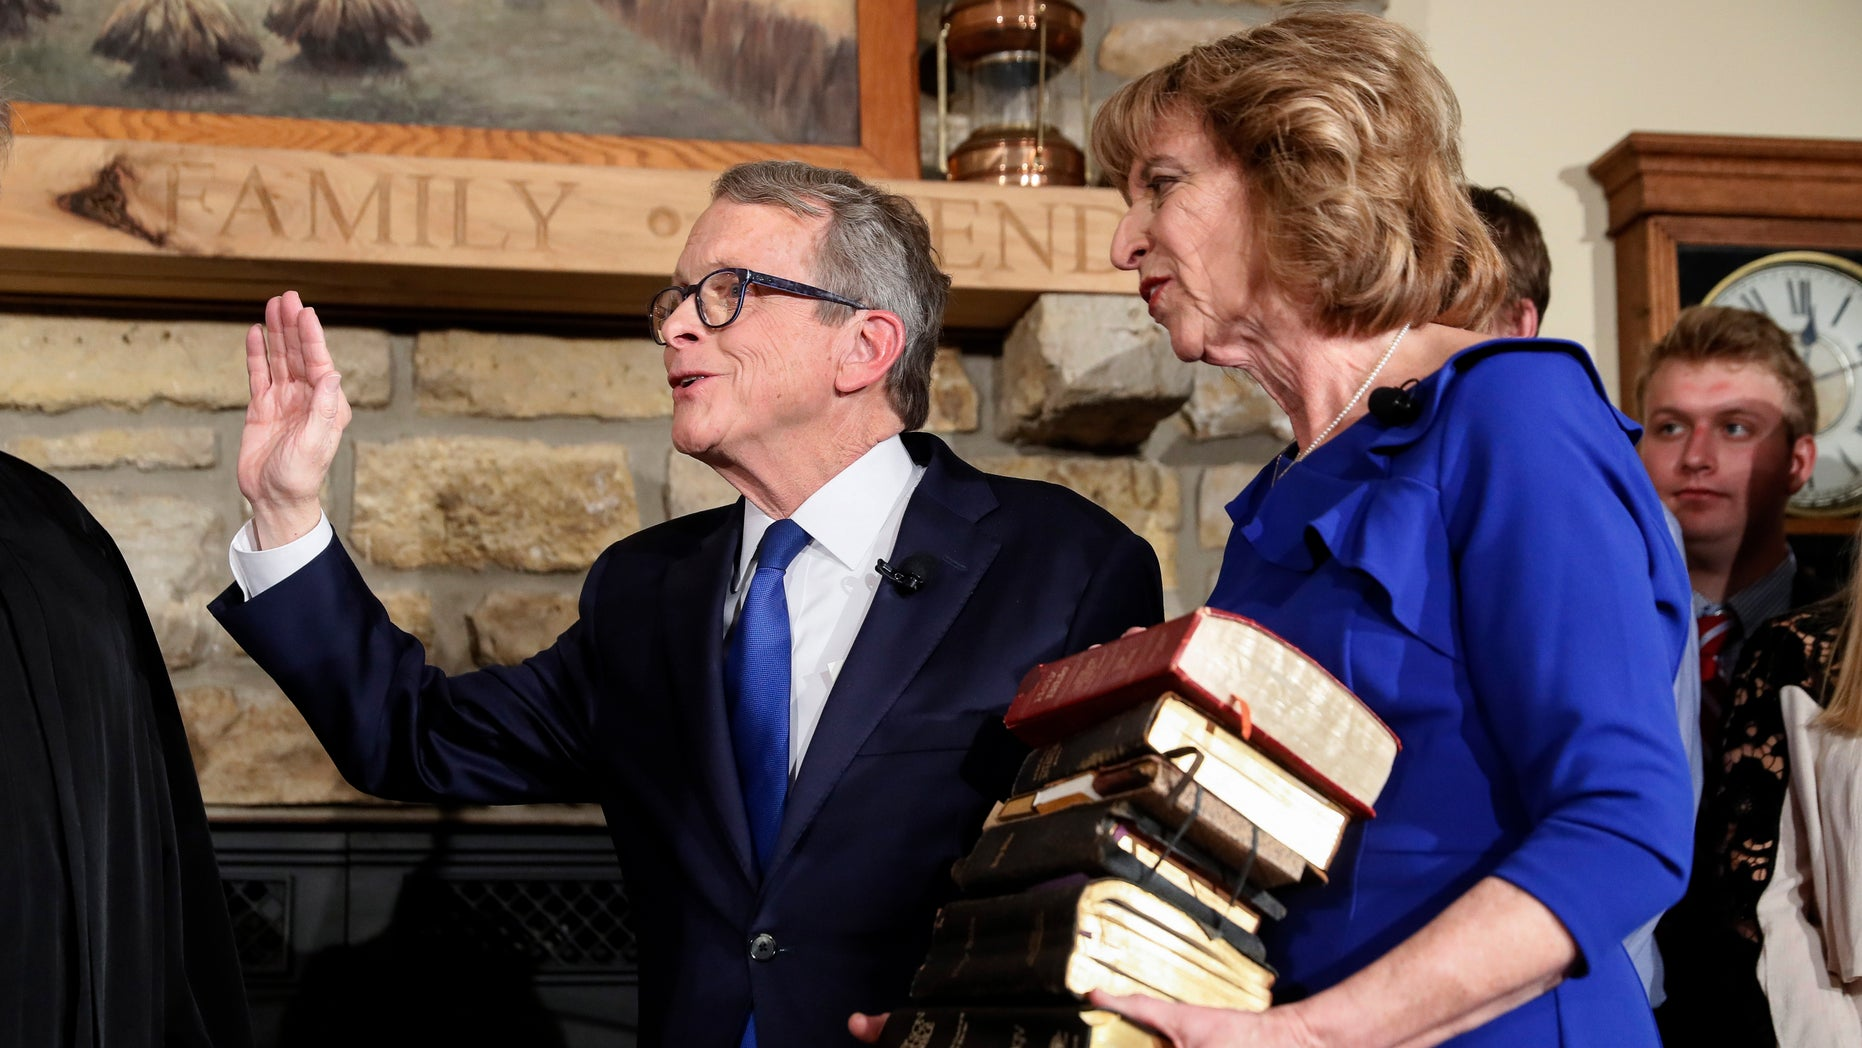 Mike DeWine is sworn in as the 70th Governor of Ohio alongside his wife Fran, Monday, Jan. 14, 2019, in Cedarville, Ohio. The former U.S. senator took his oath in a private midnight ceremony at his Cedarville home ahead of a public inauguration Monday at the Statehouse.